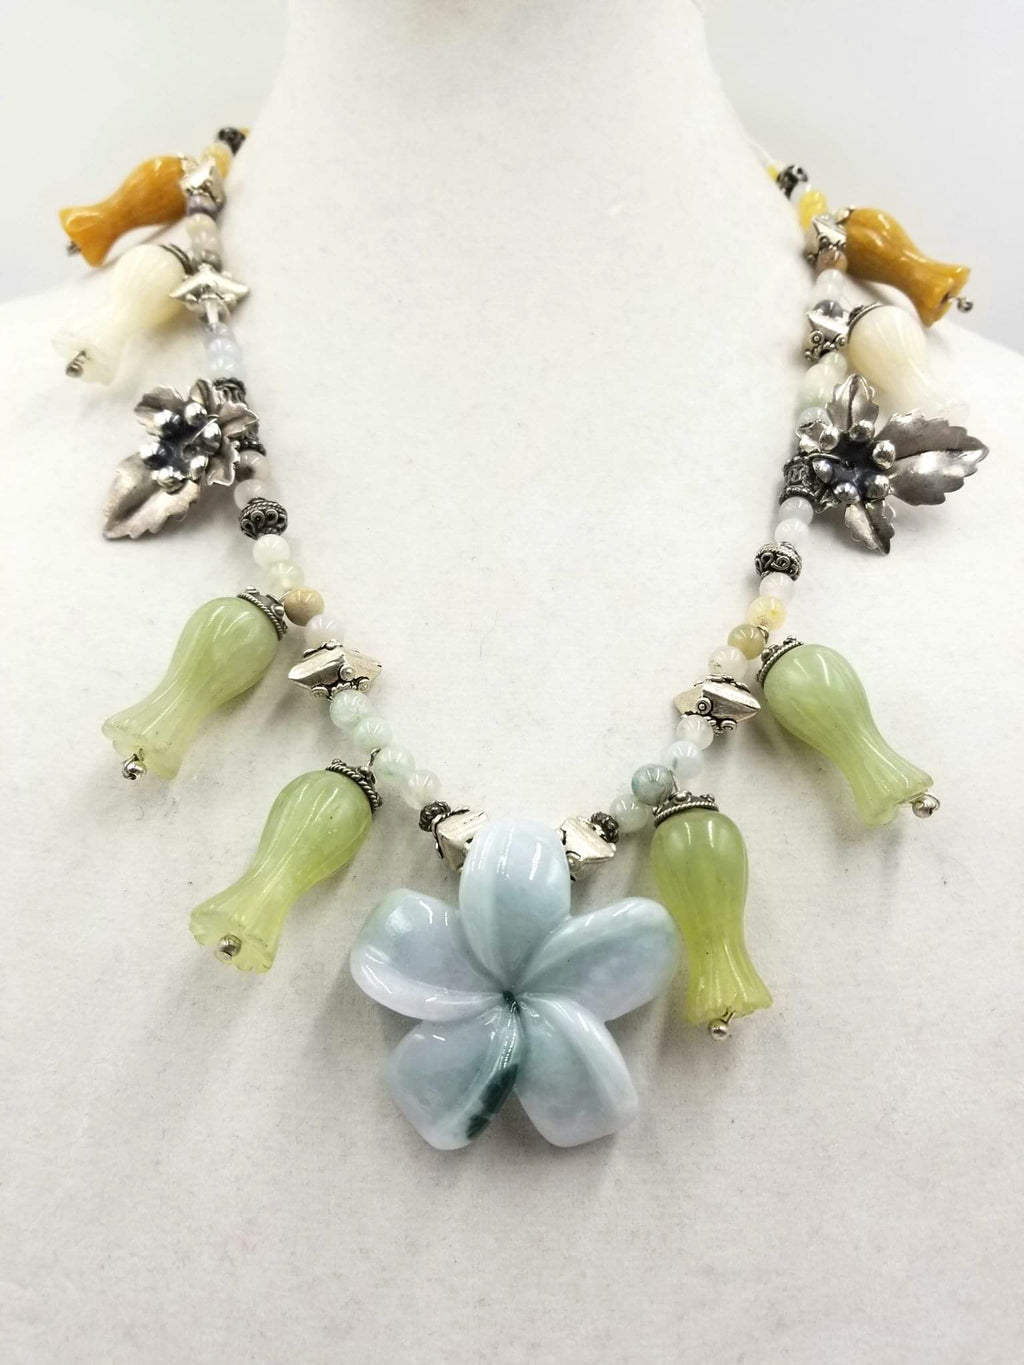 Up for auction at Ogallerie.com Sept 17-18. Chinese squash blossom necklace, sterling silver, jadeite,&  aventurine.